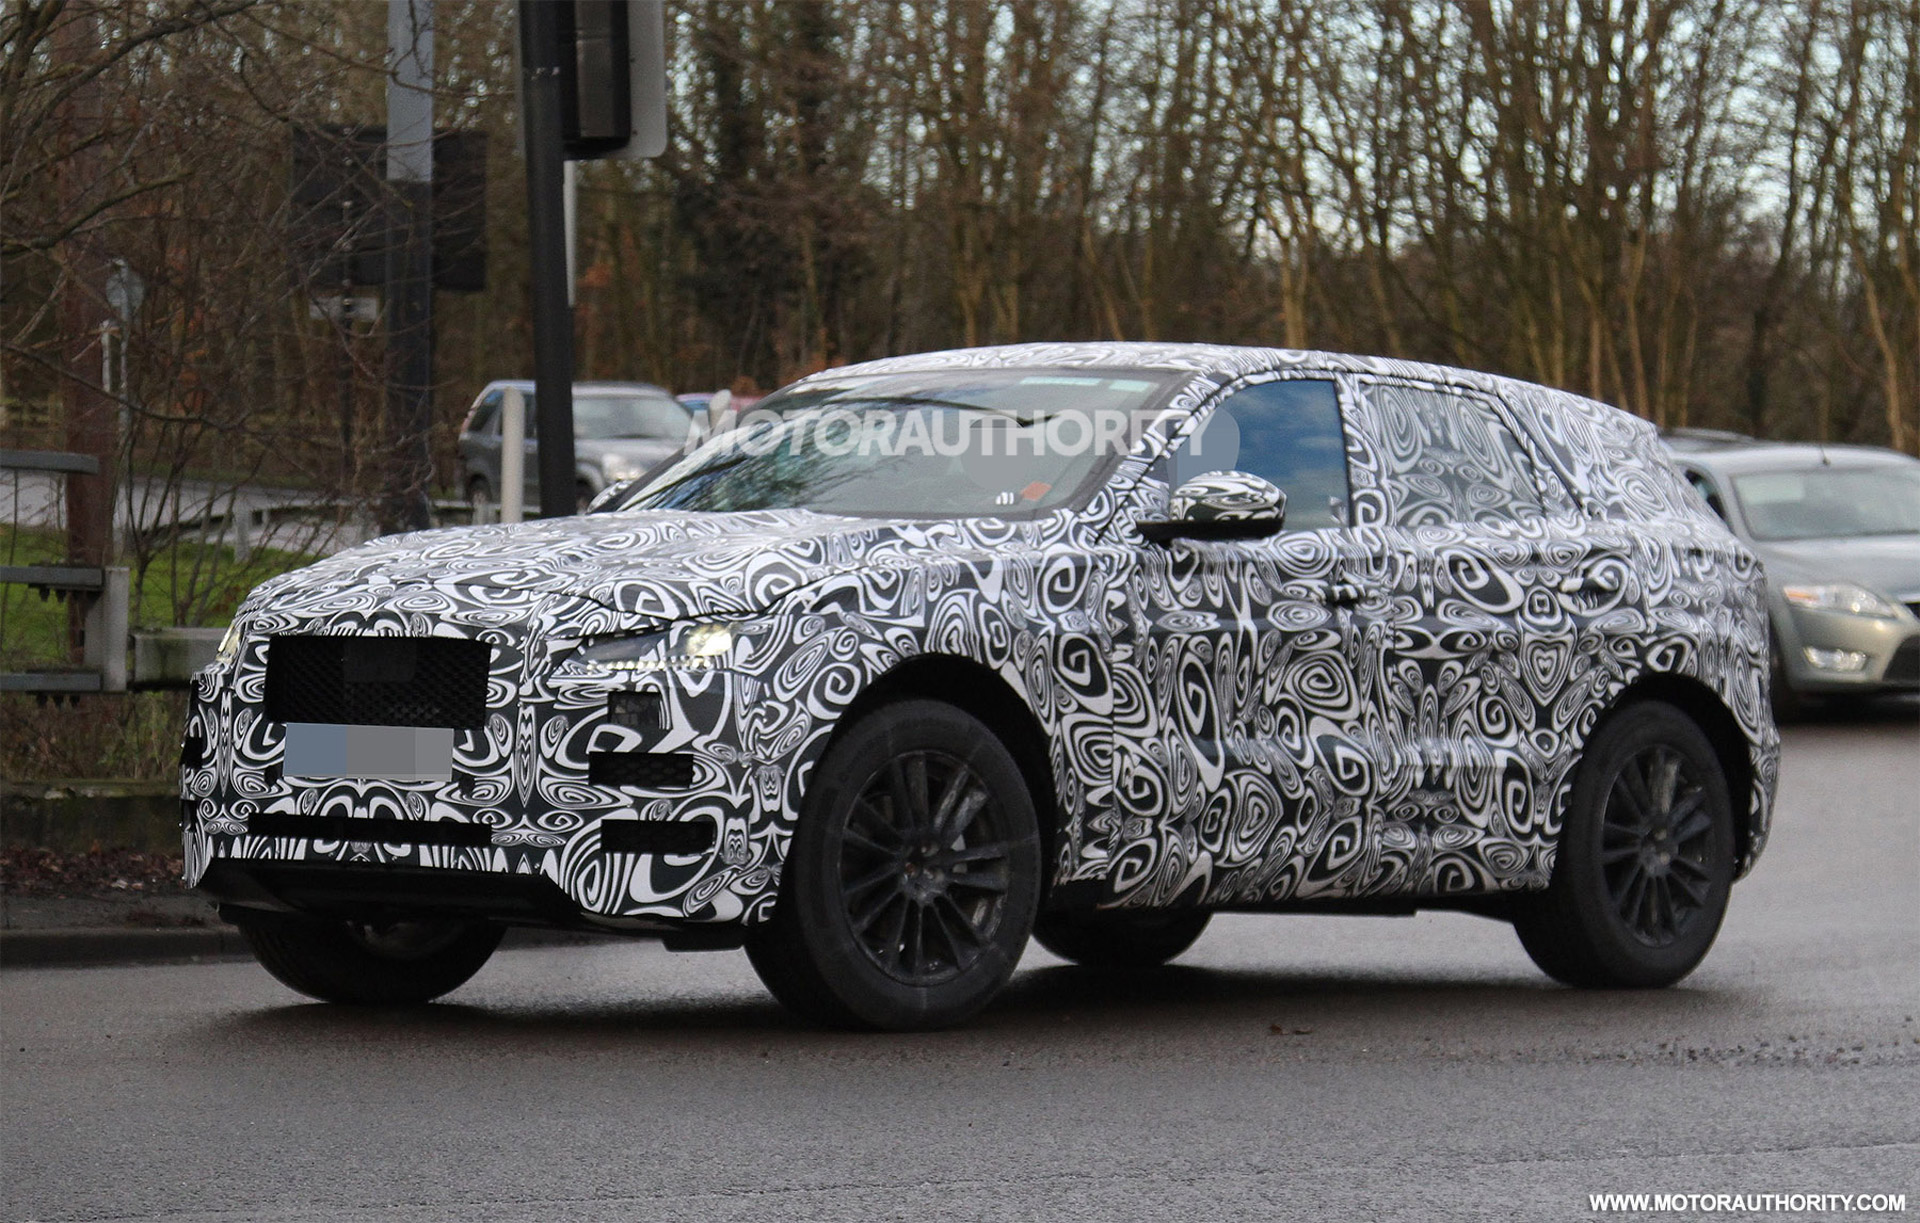 2017 Jaguar F-Pace, 2016 Discovery Sport, 2015 VW Golf GTD: This Week's Top Photos